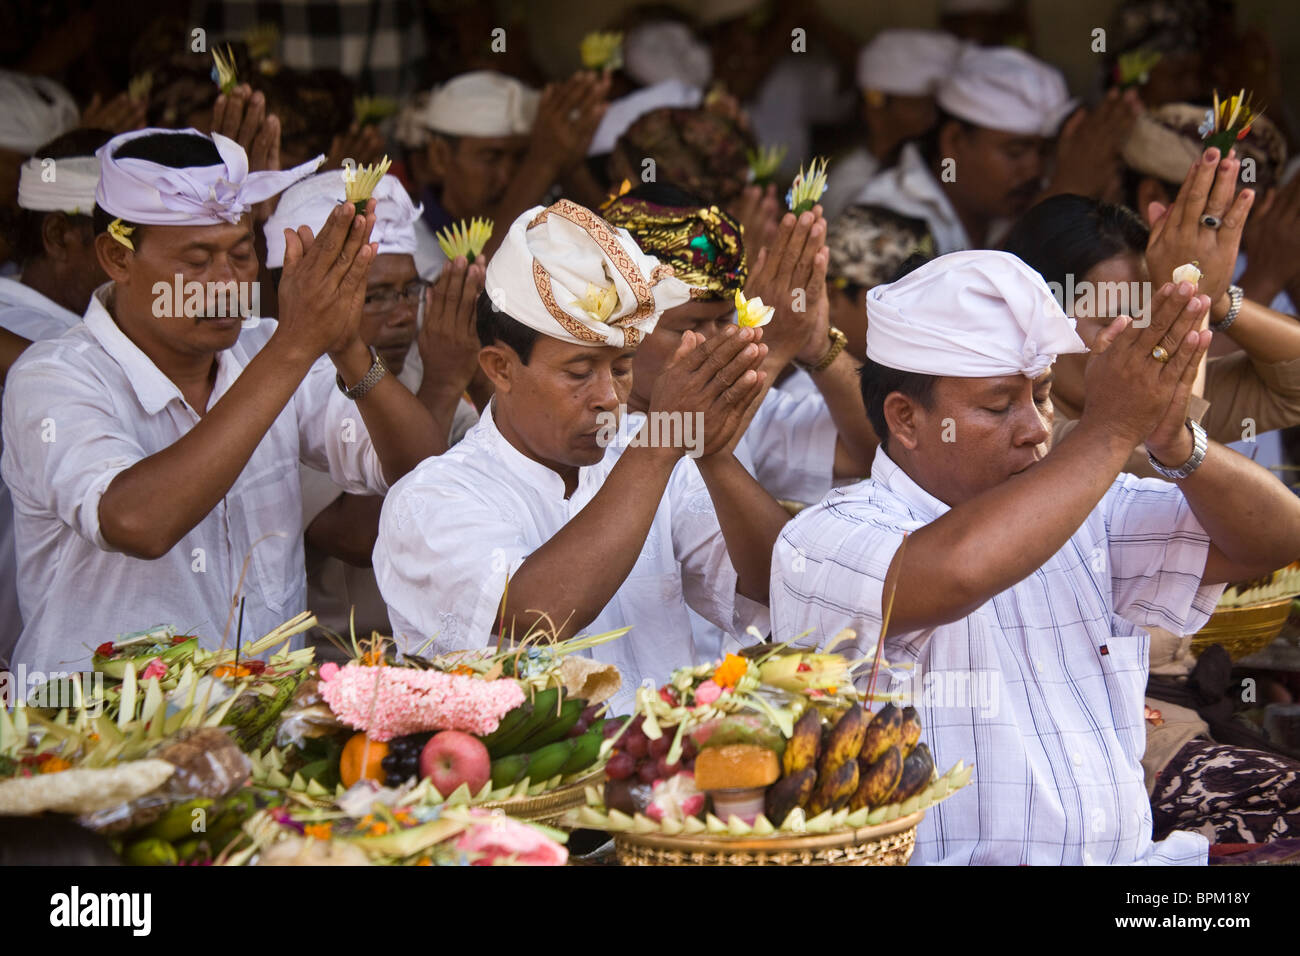 Religious practitioners pray during a ceremony in Bali Indonesia - Stock Image